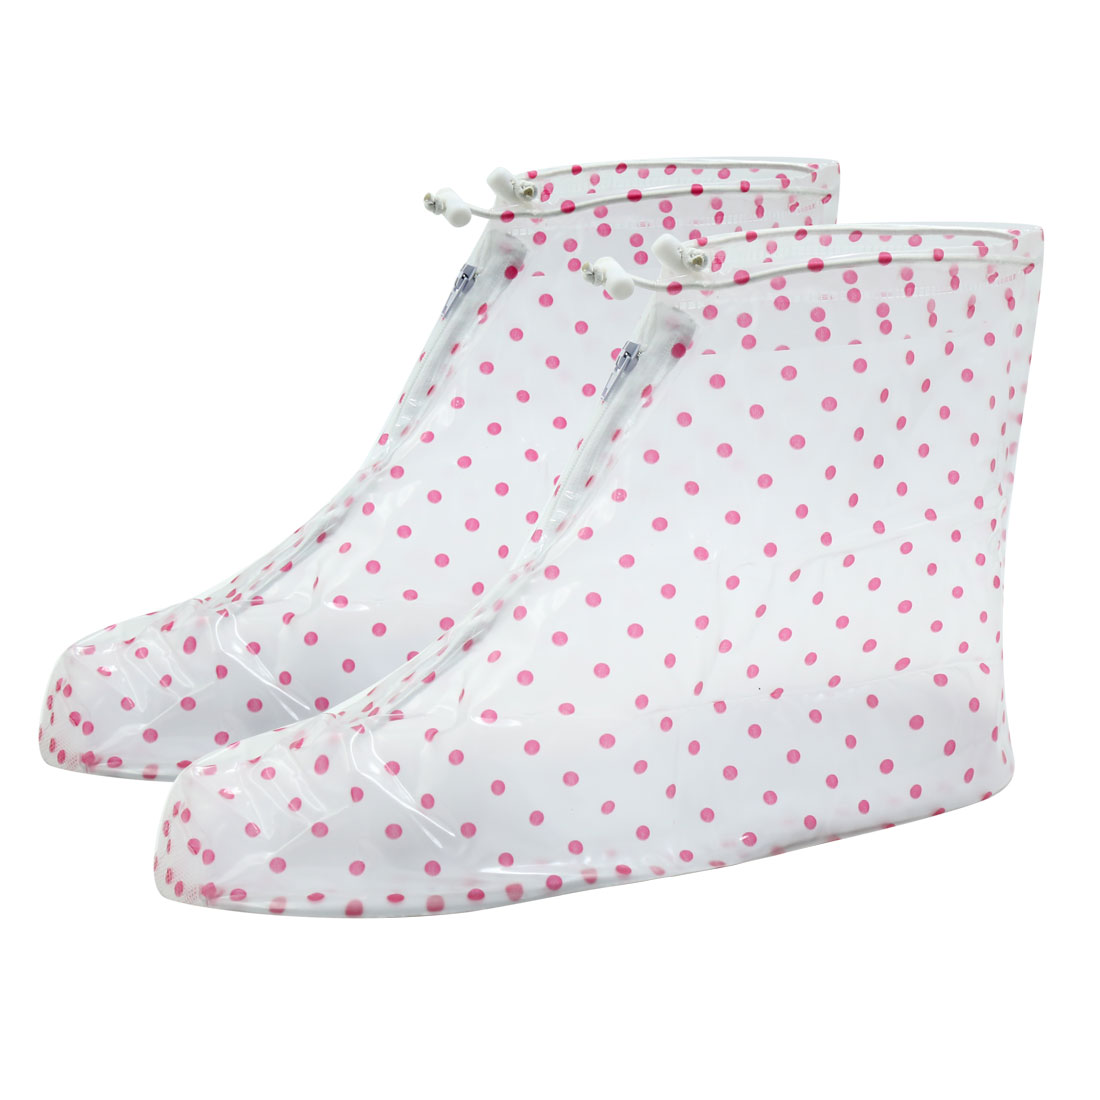 1 Pair Clear Pink Size XL Dots Pattern PVC Nonslip Reusable Waterproof Rain Shoes Cover Guard Overshoes